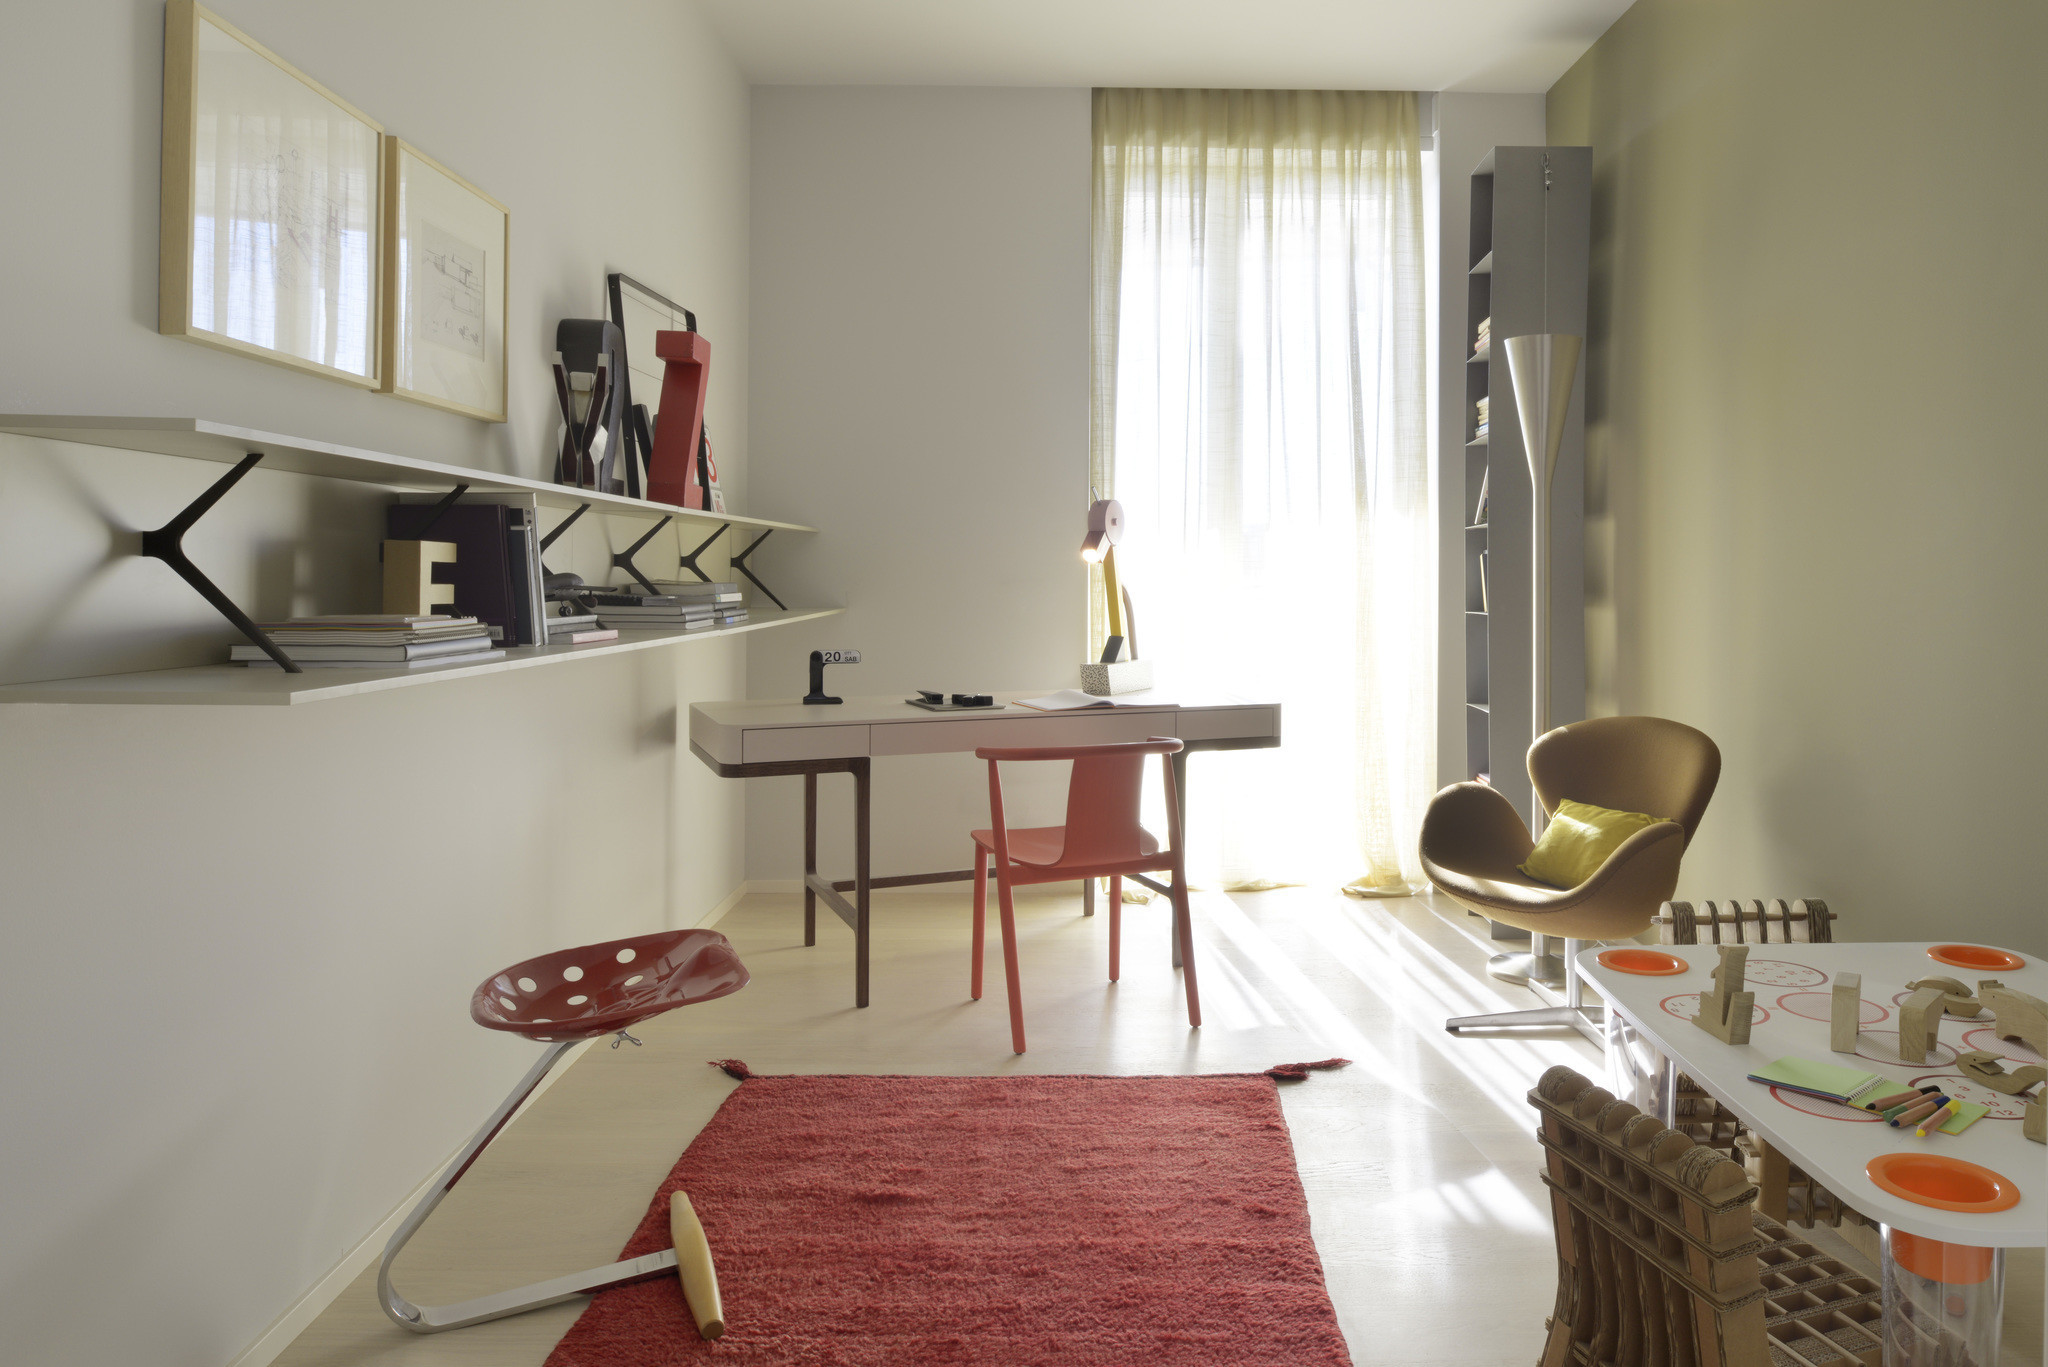 New flat for sale in Milan, CityLife with beautiful green terraces